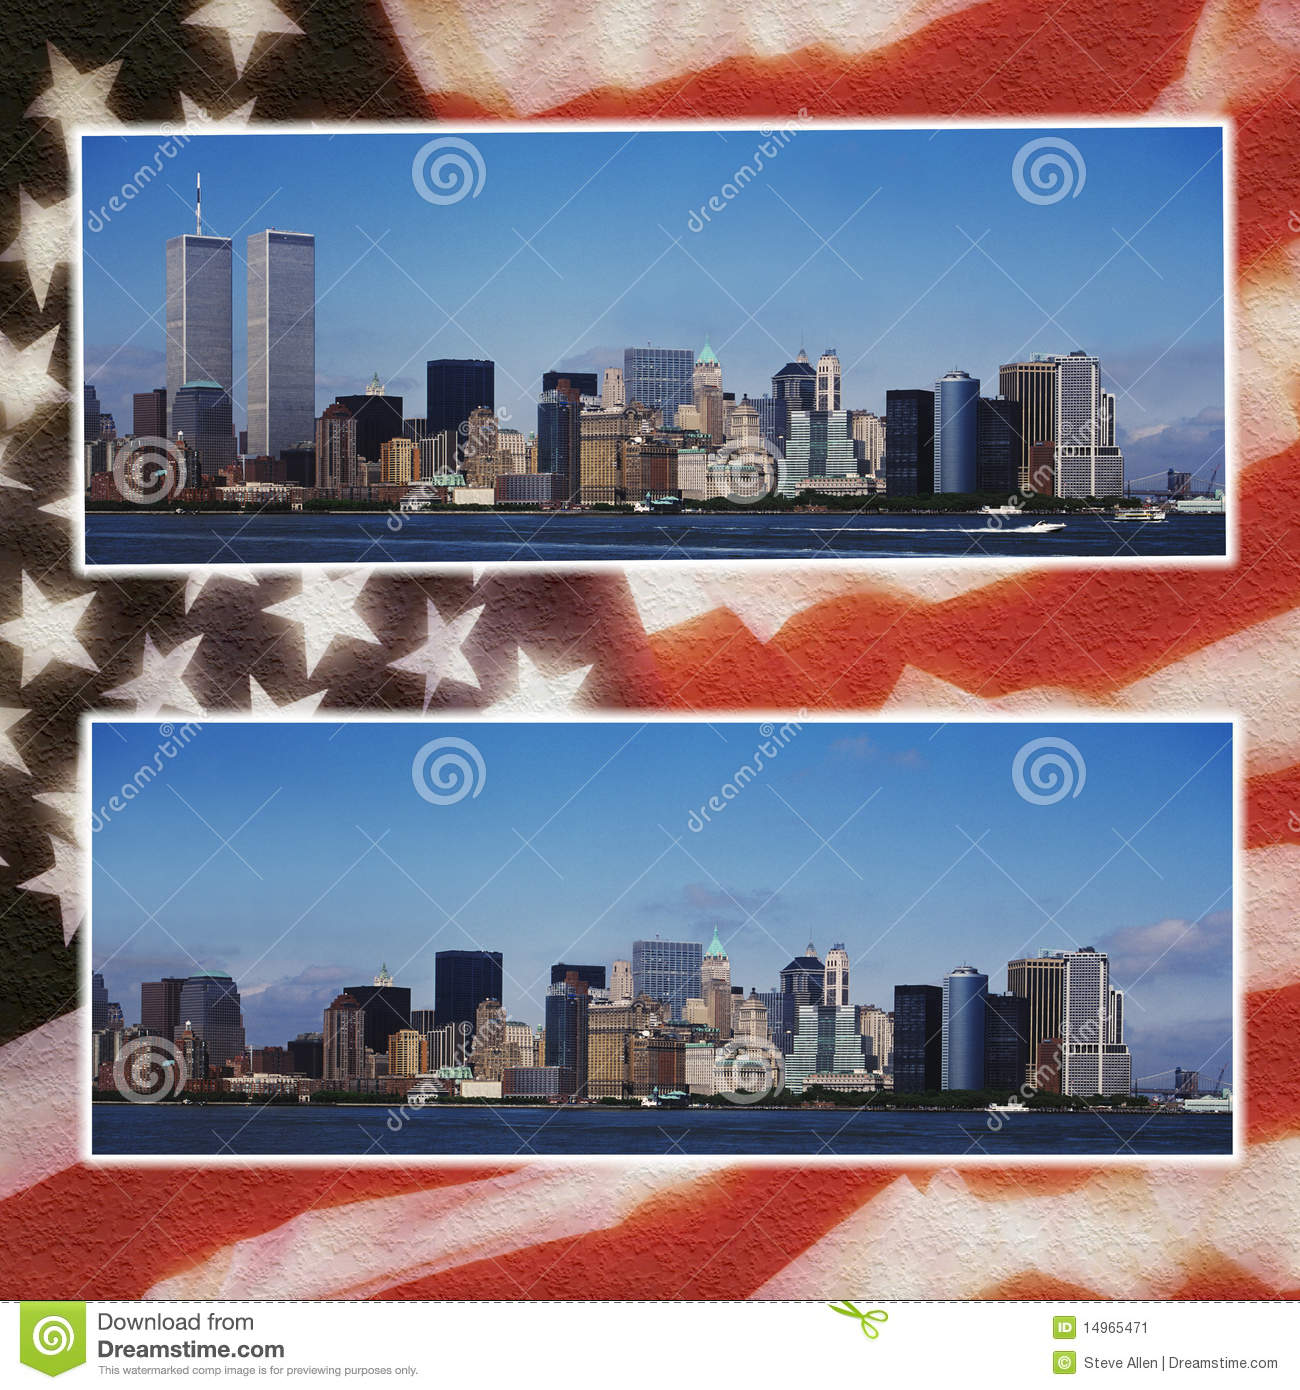 World Trade Center pictures before during and after 911